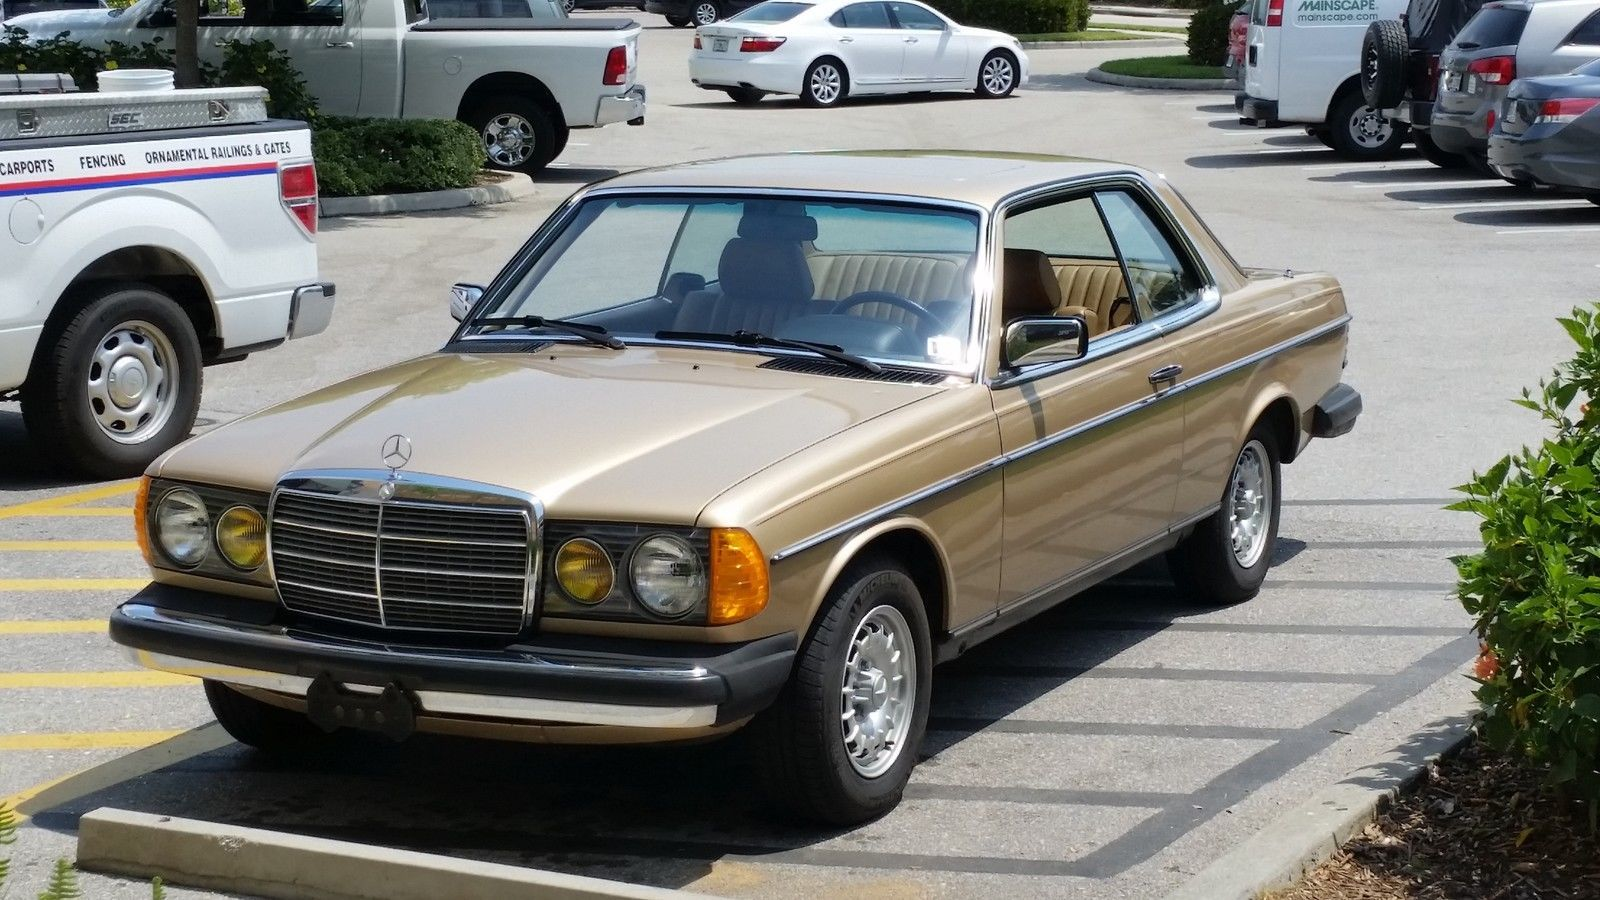 1983 Mercedes Benz 300CD Coupe | 80s cars for sale | Pinterest ...